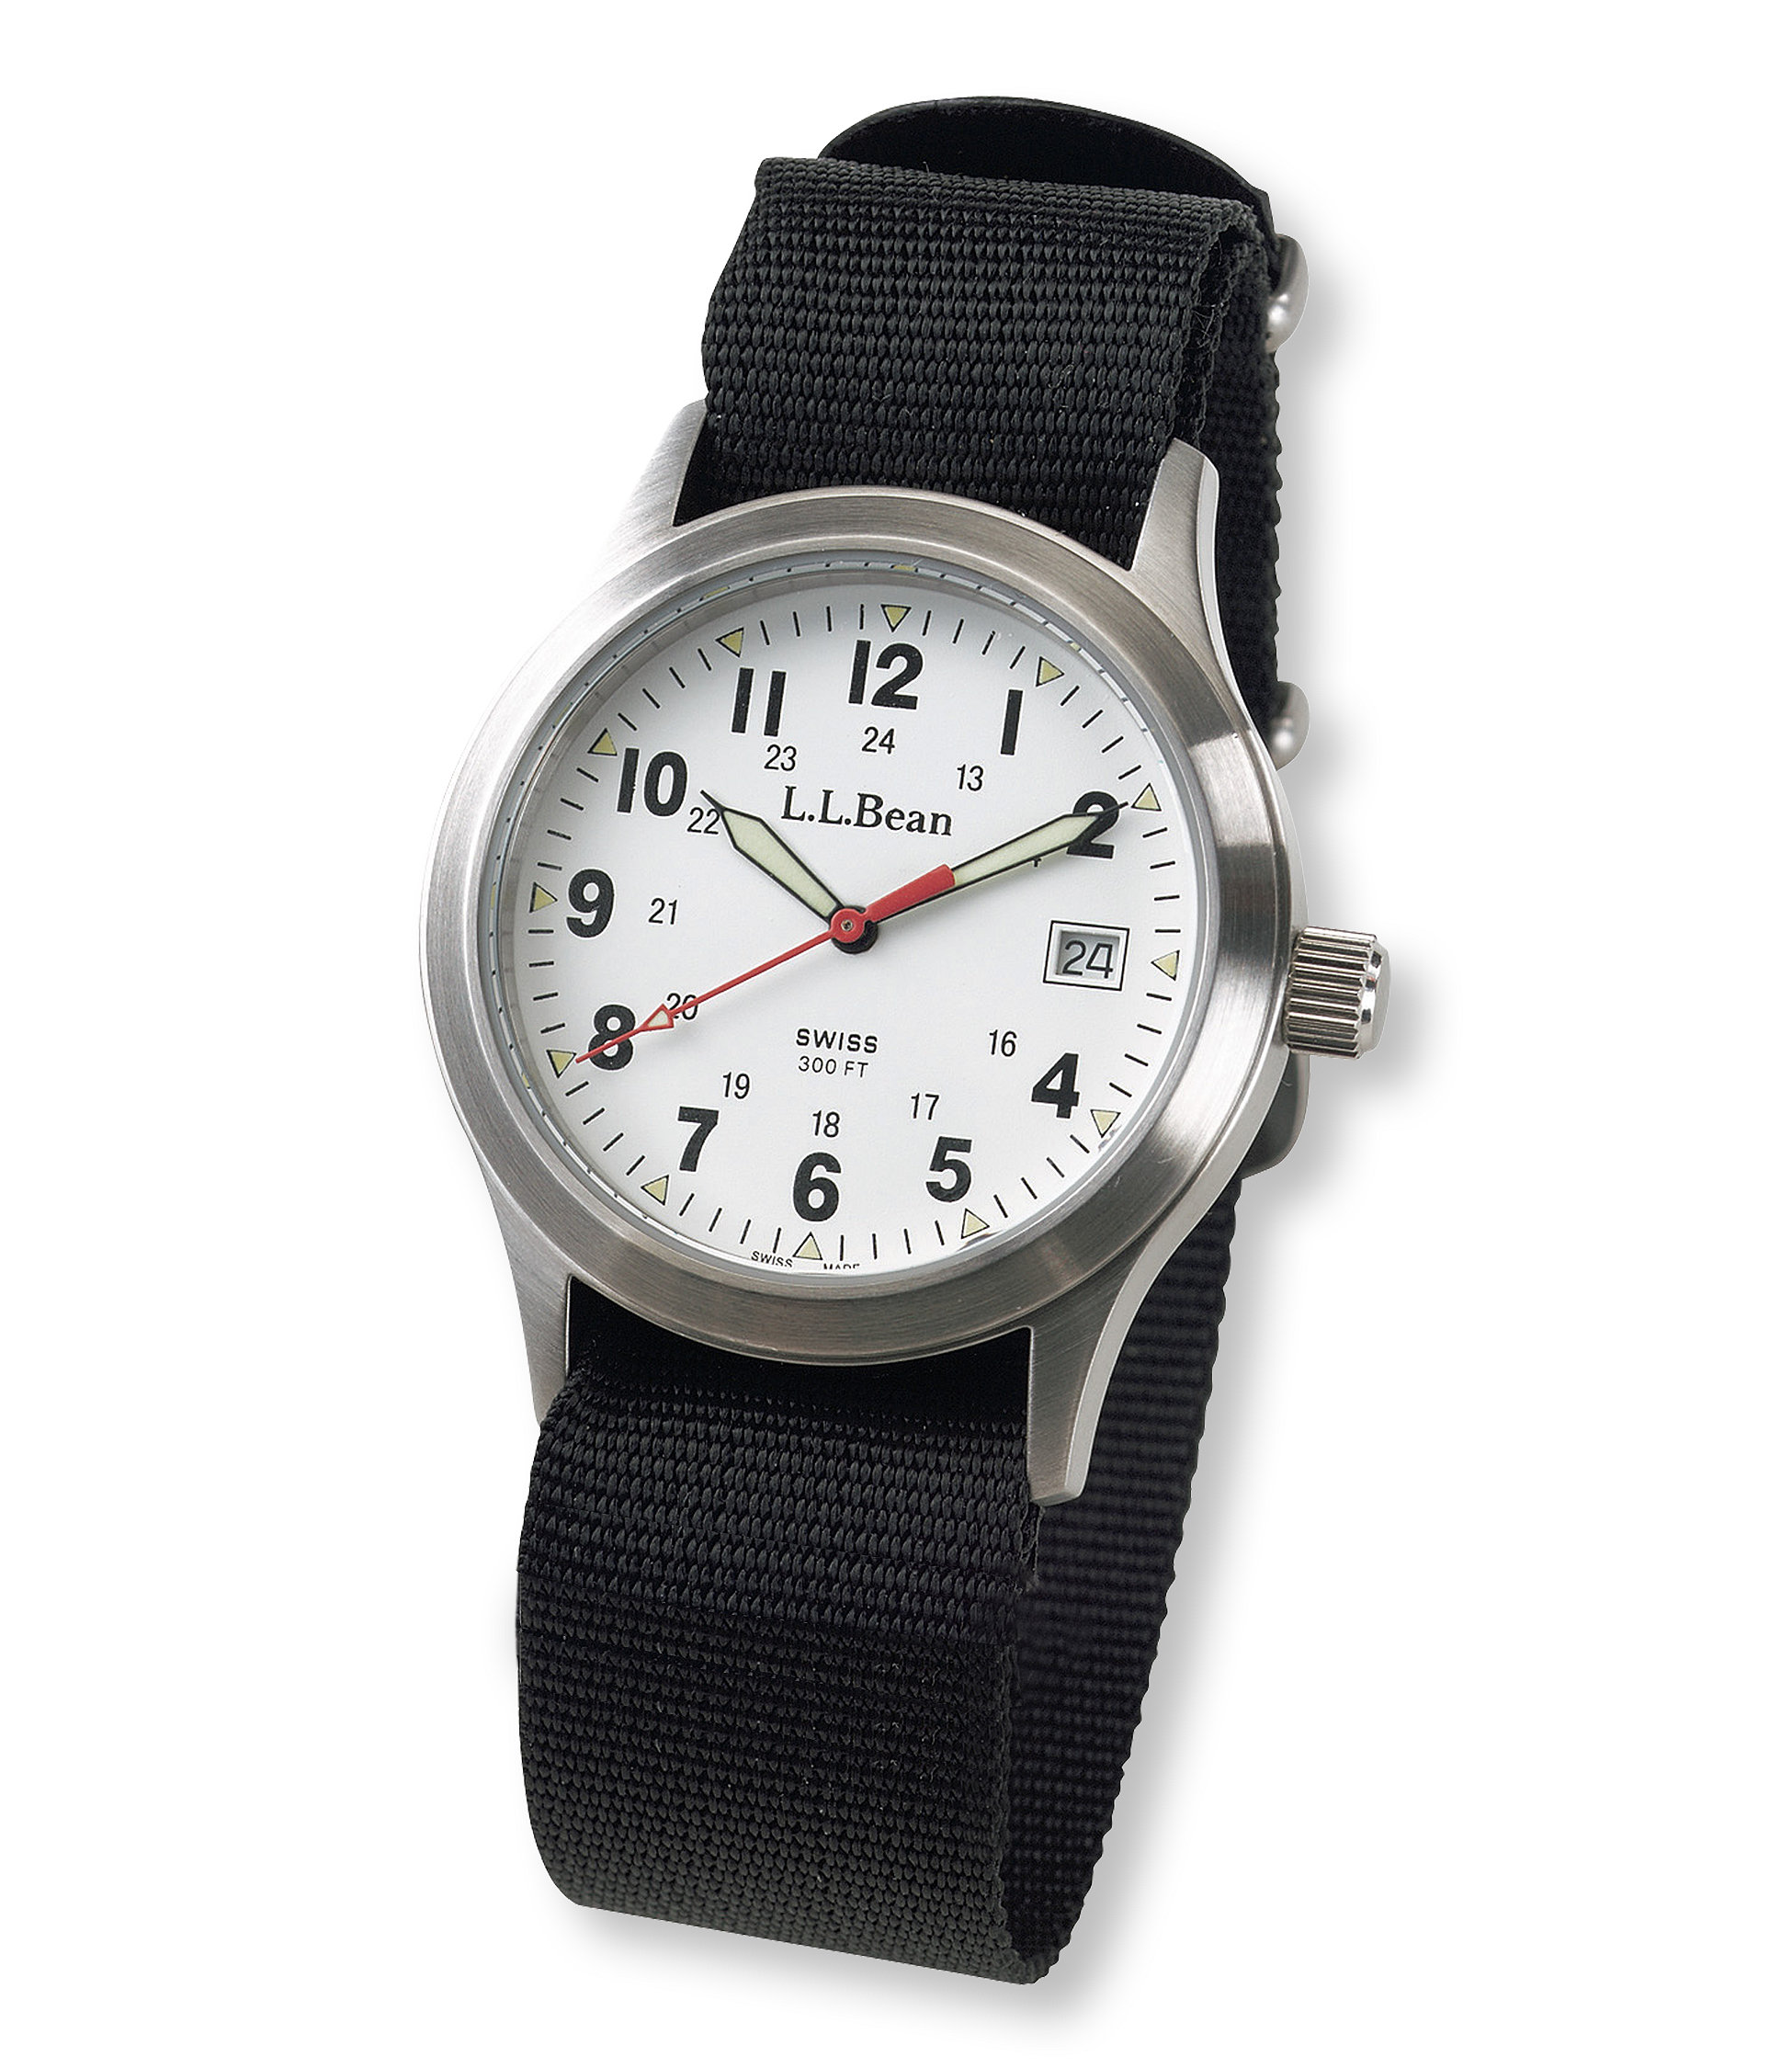 L.L.Bean Vintage Field Watch